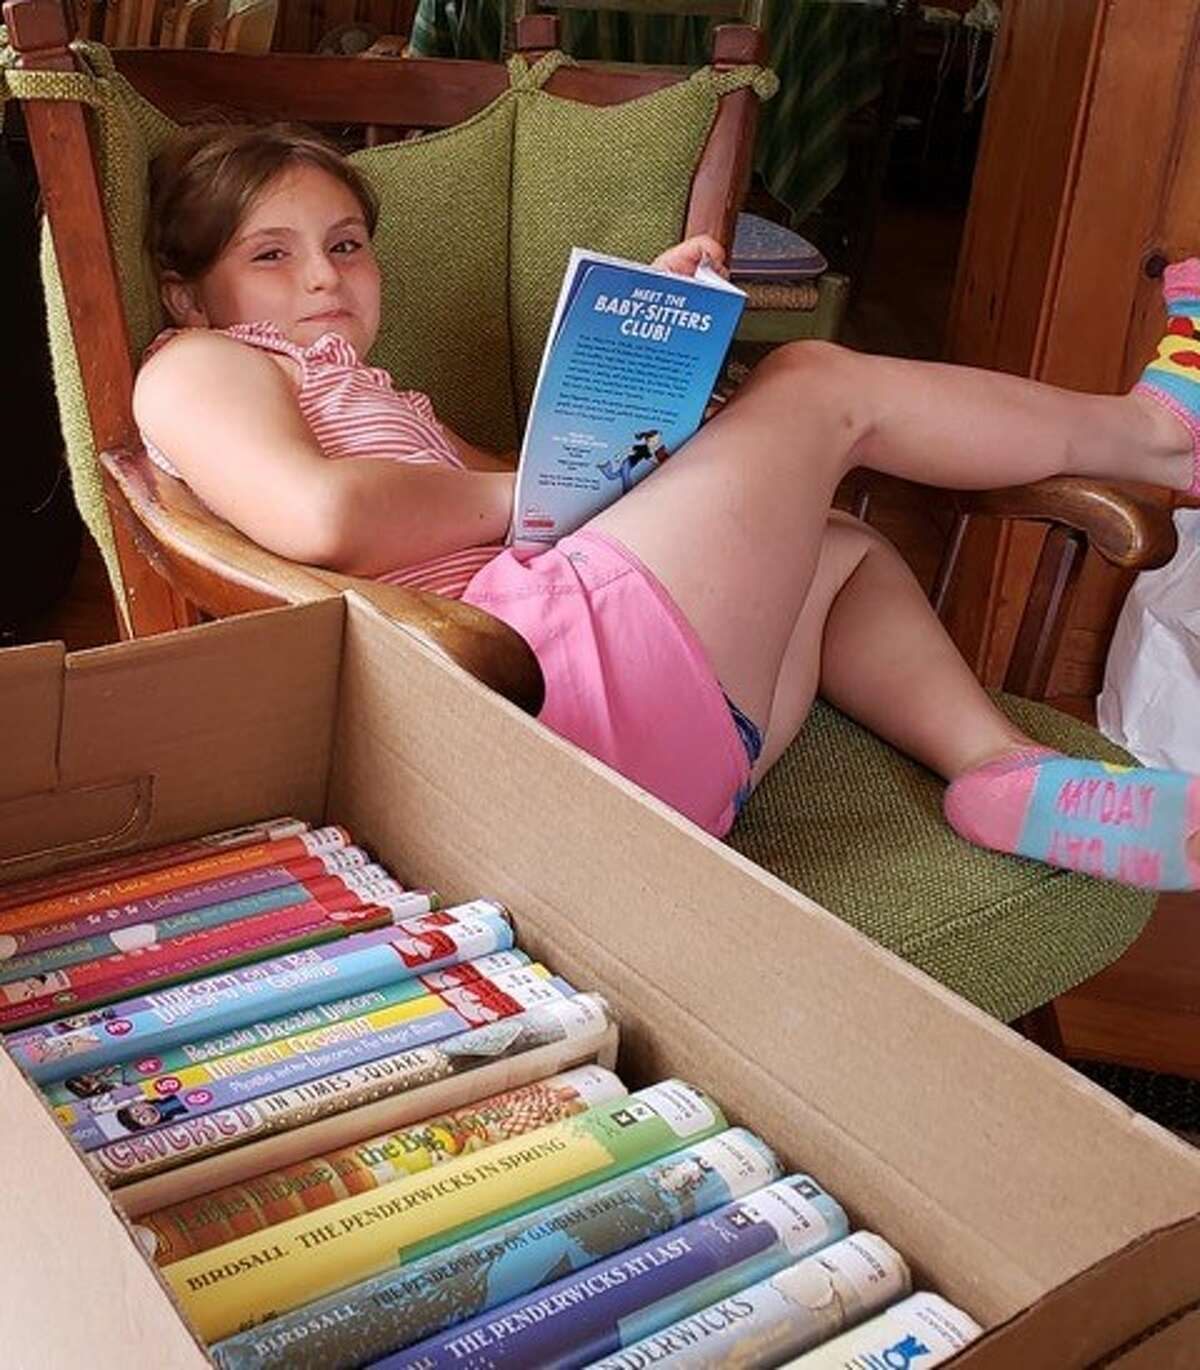 Ann-Marie Helldorfer's niece, Annaliese Cooney, with some of the books Ann-Marie put together for a summer reading collection. (Provided)